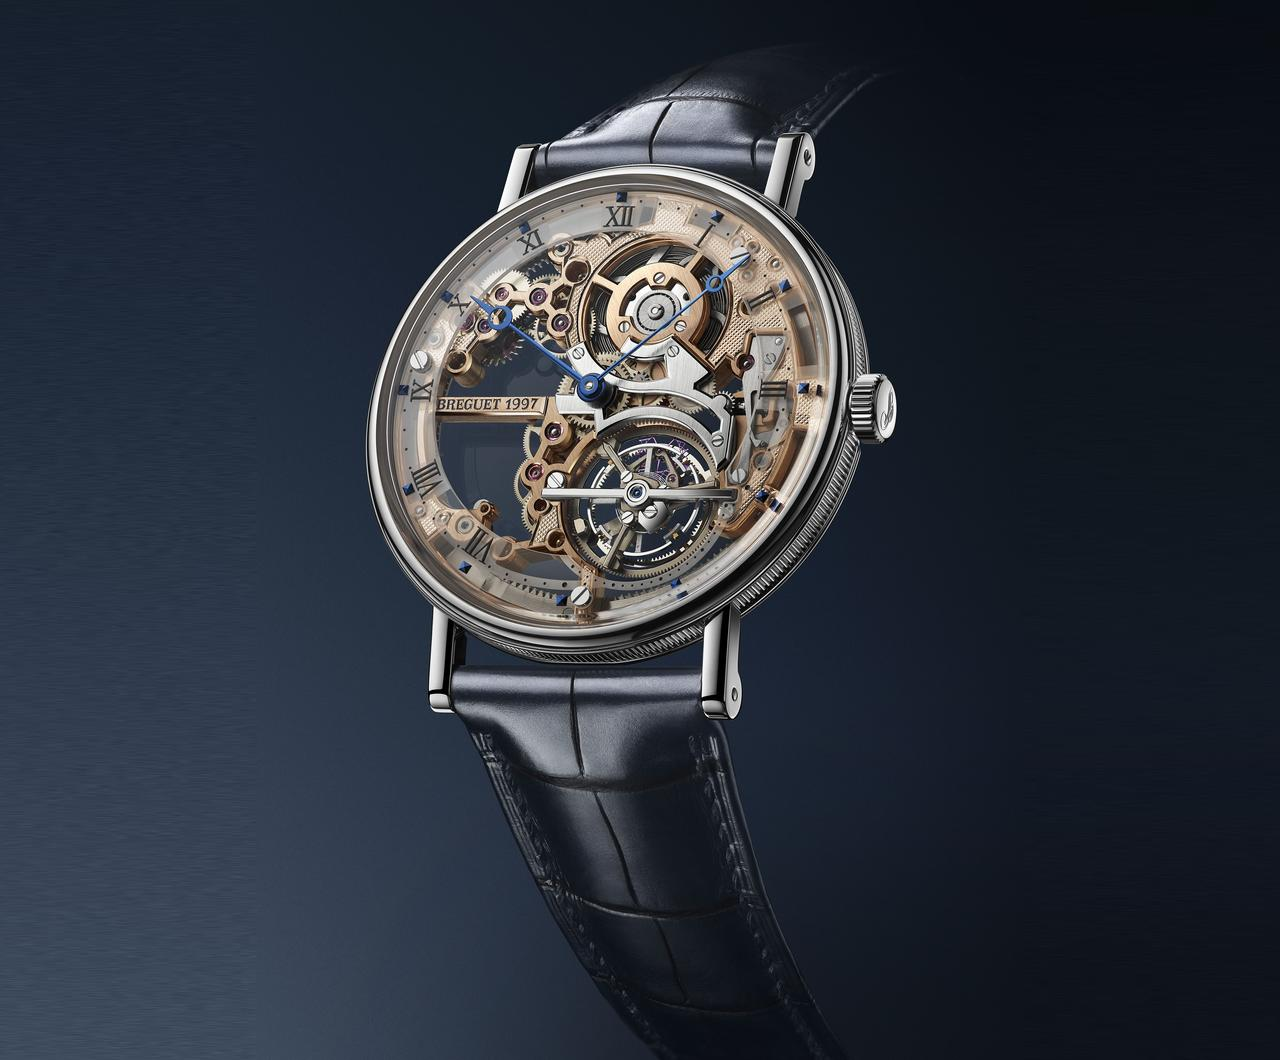 Breguet Skeletonizes its Thin Tourbillon